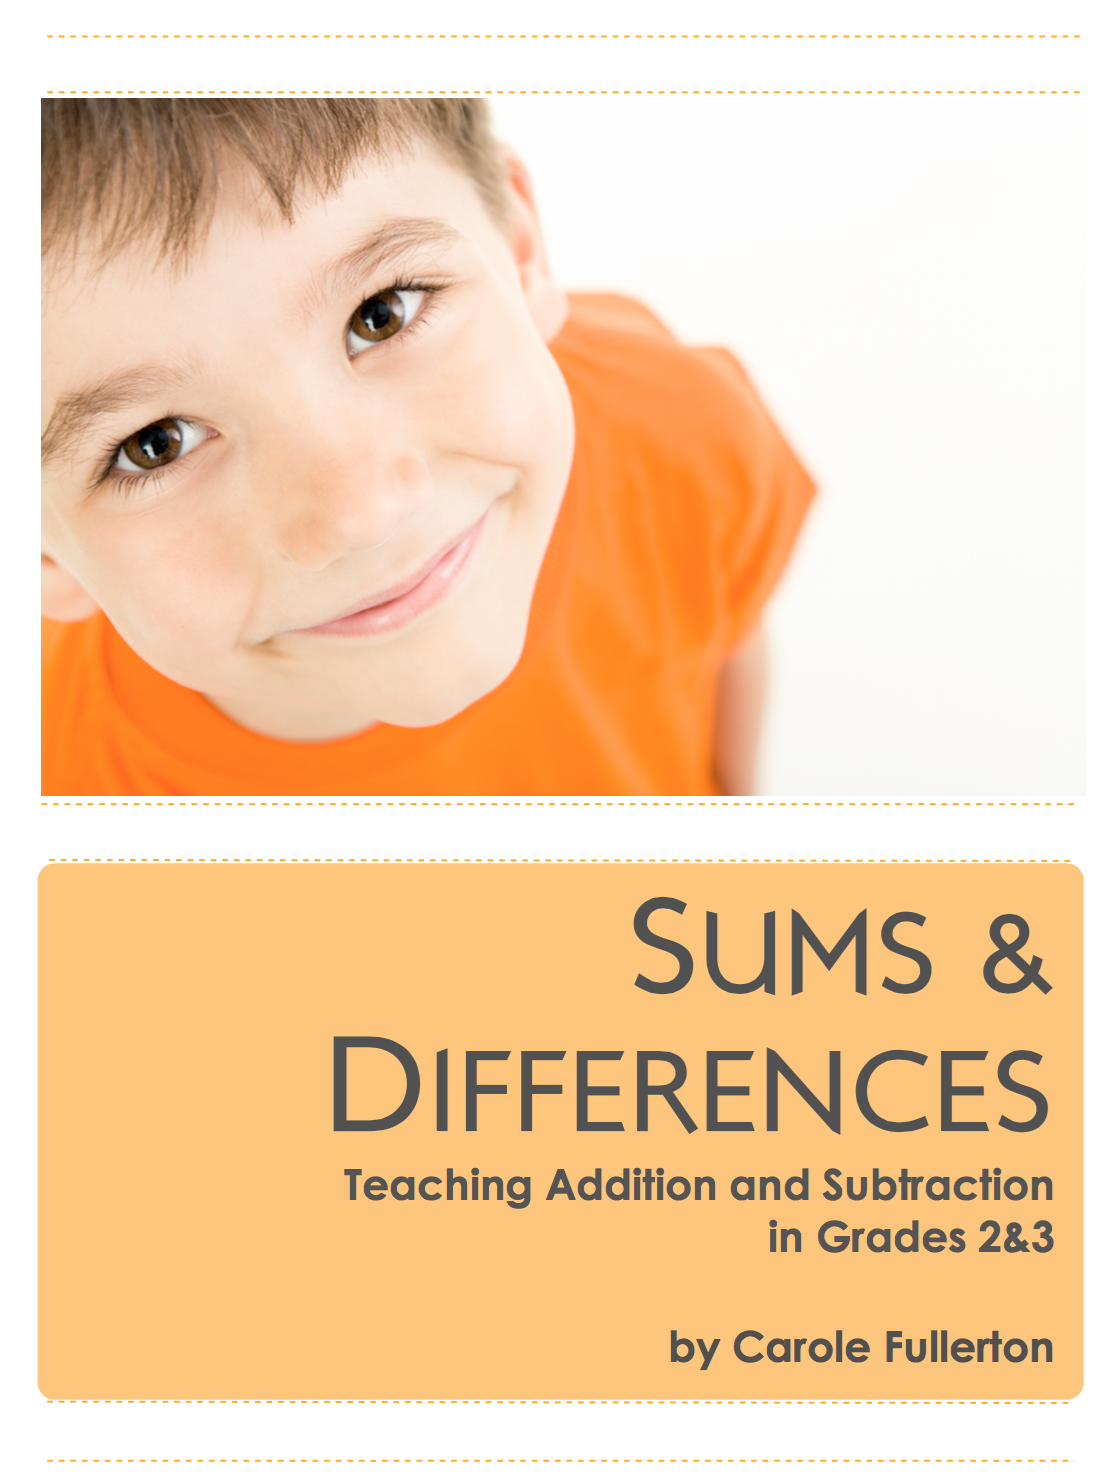 Sums and Differences for Grades 2&3